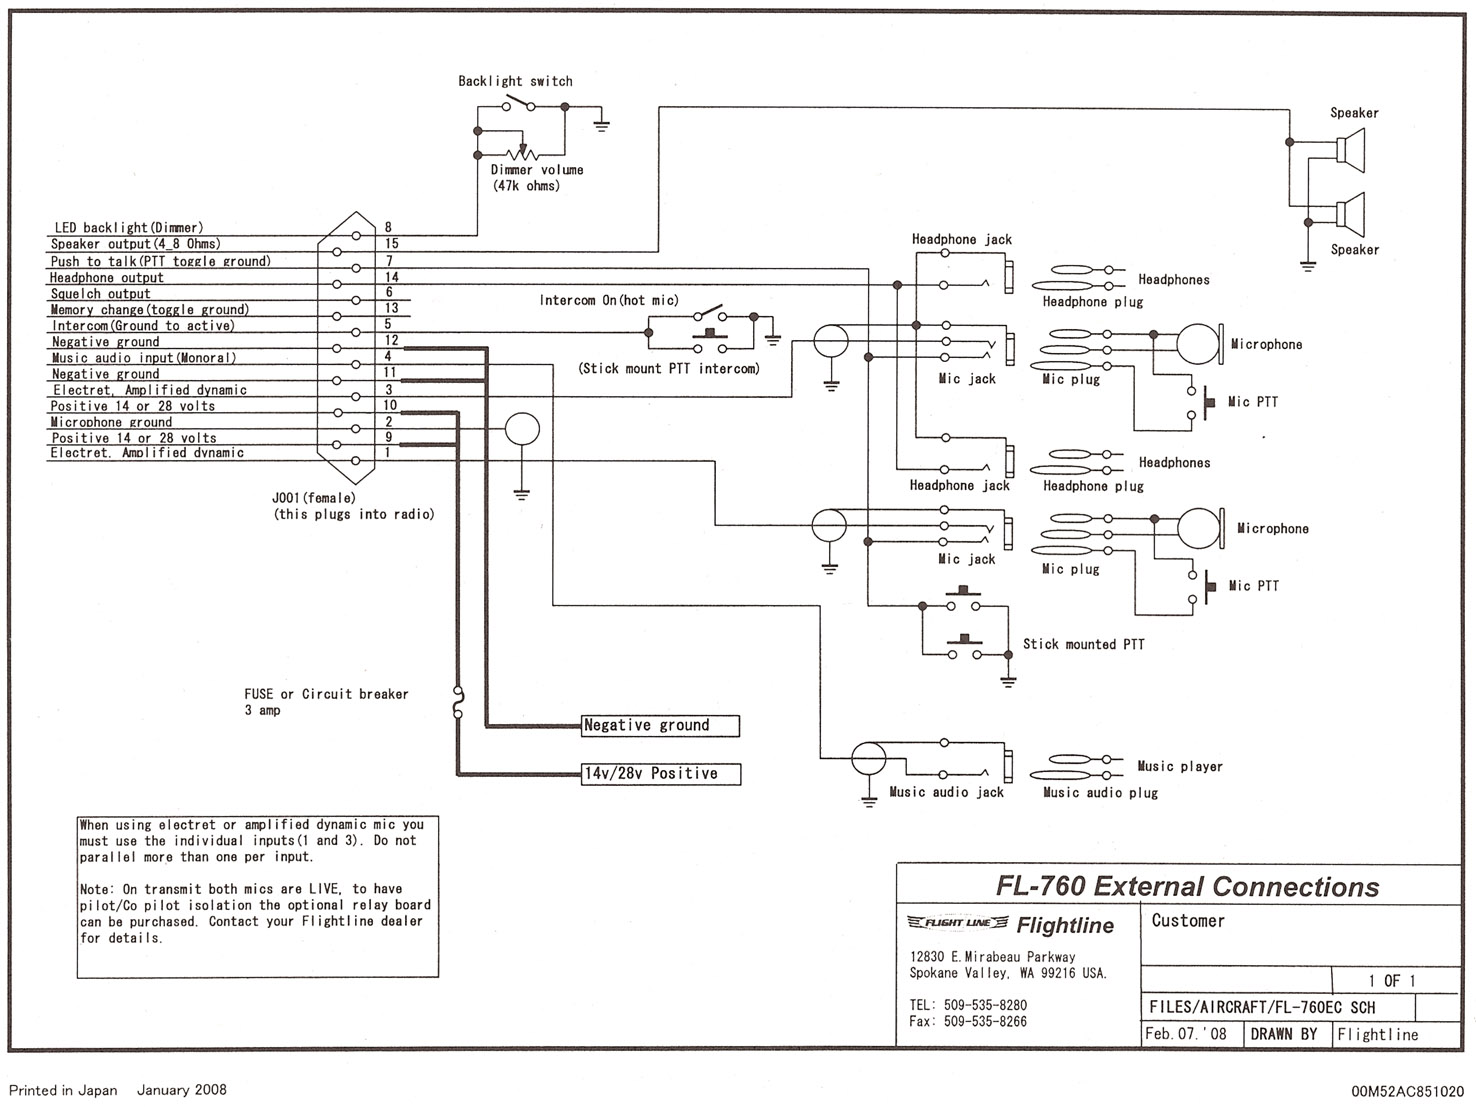 ... http://forums.matronics.com//files/fl_760_wiring_diagram_179.jpg